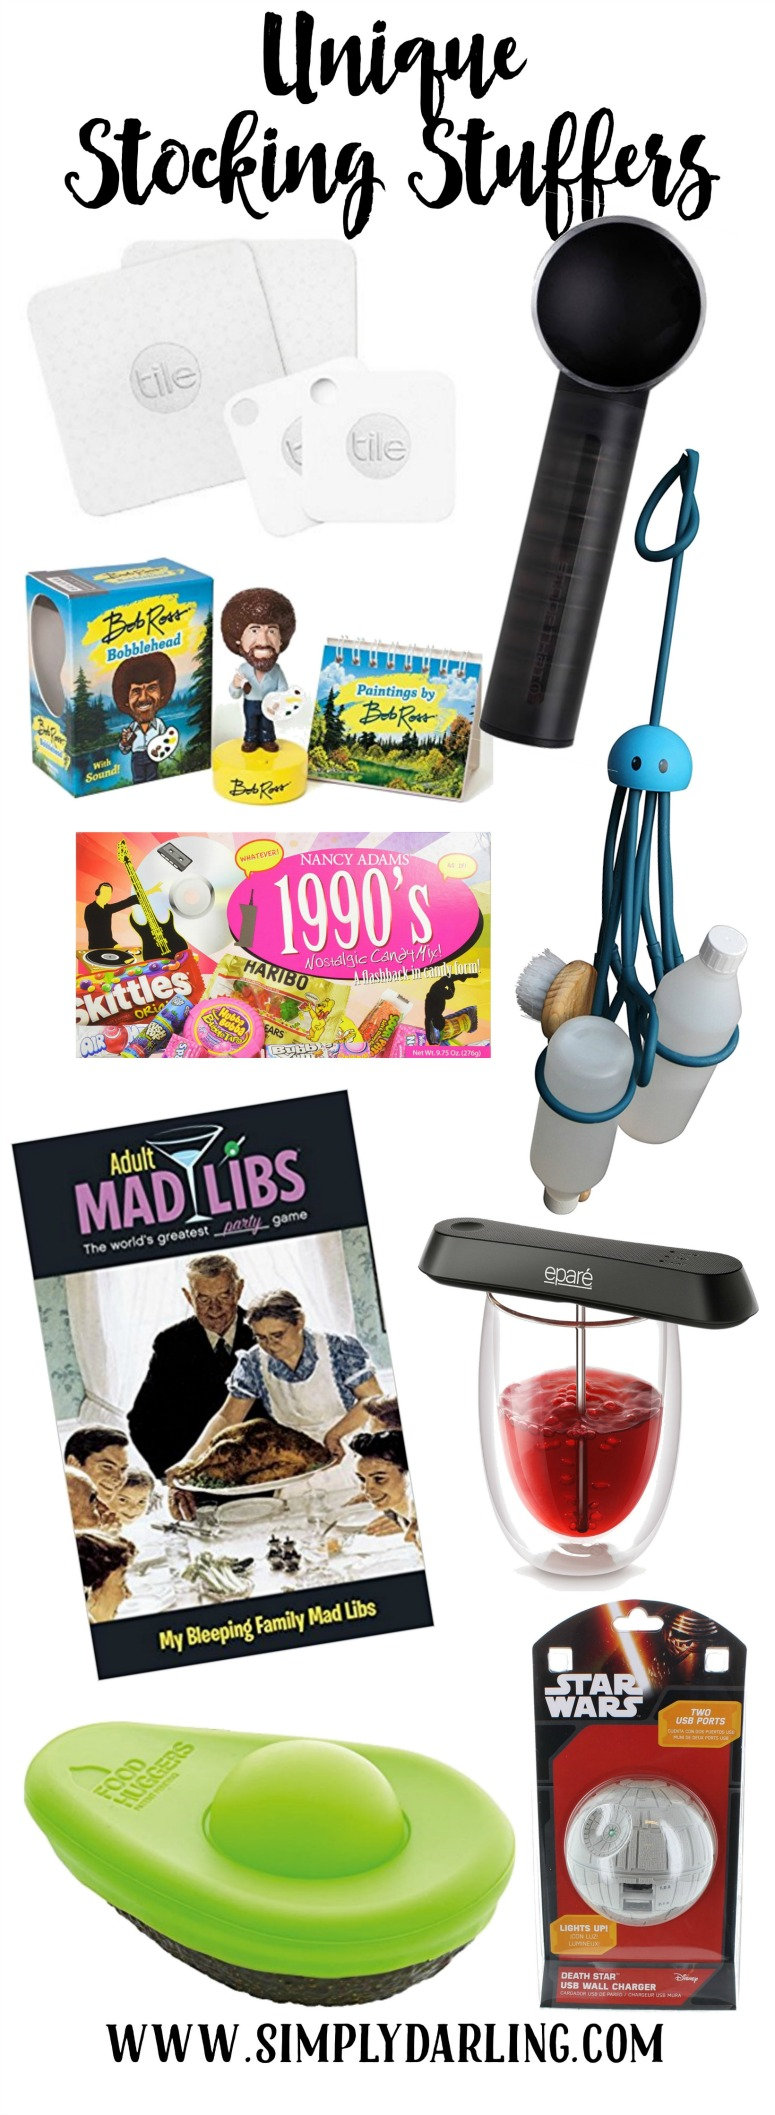 Unique stocking stuffers for adults simply darr ling Unique stocking stuffers adults